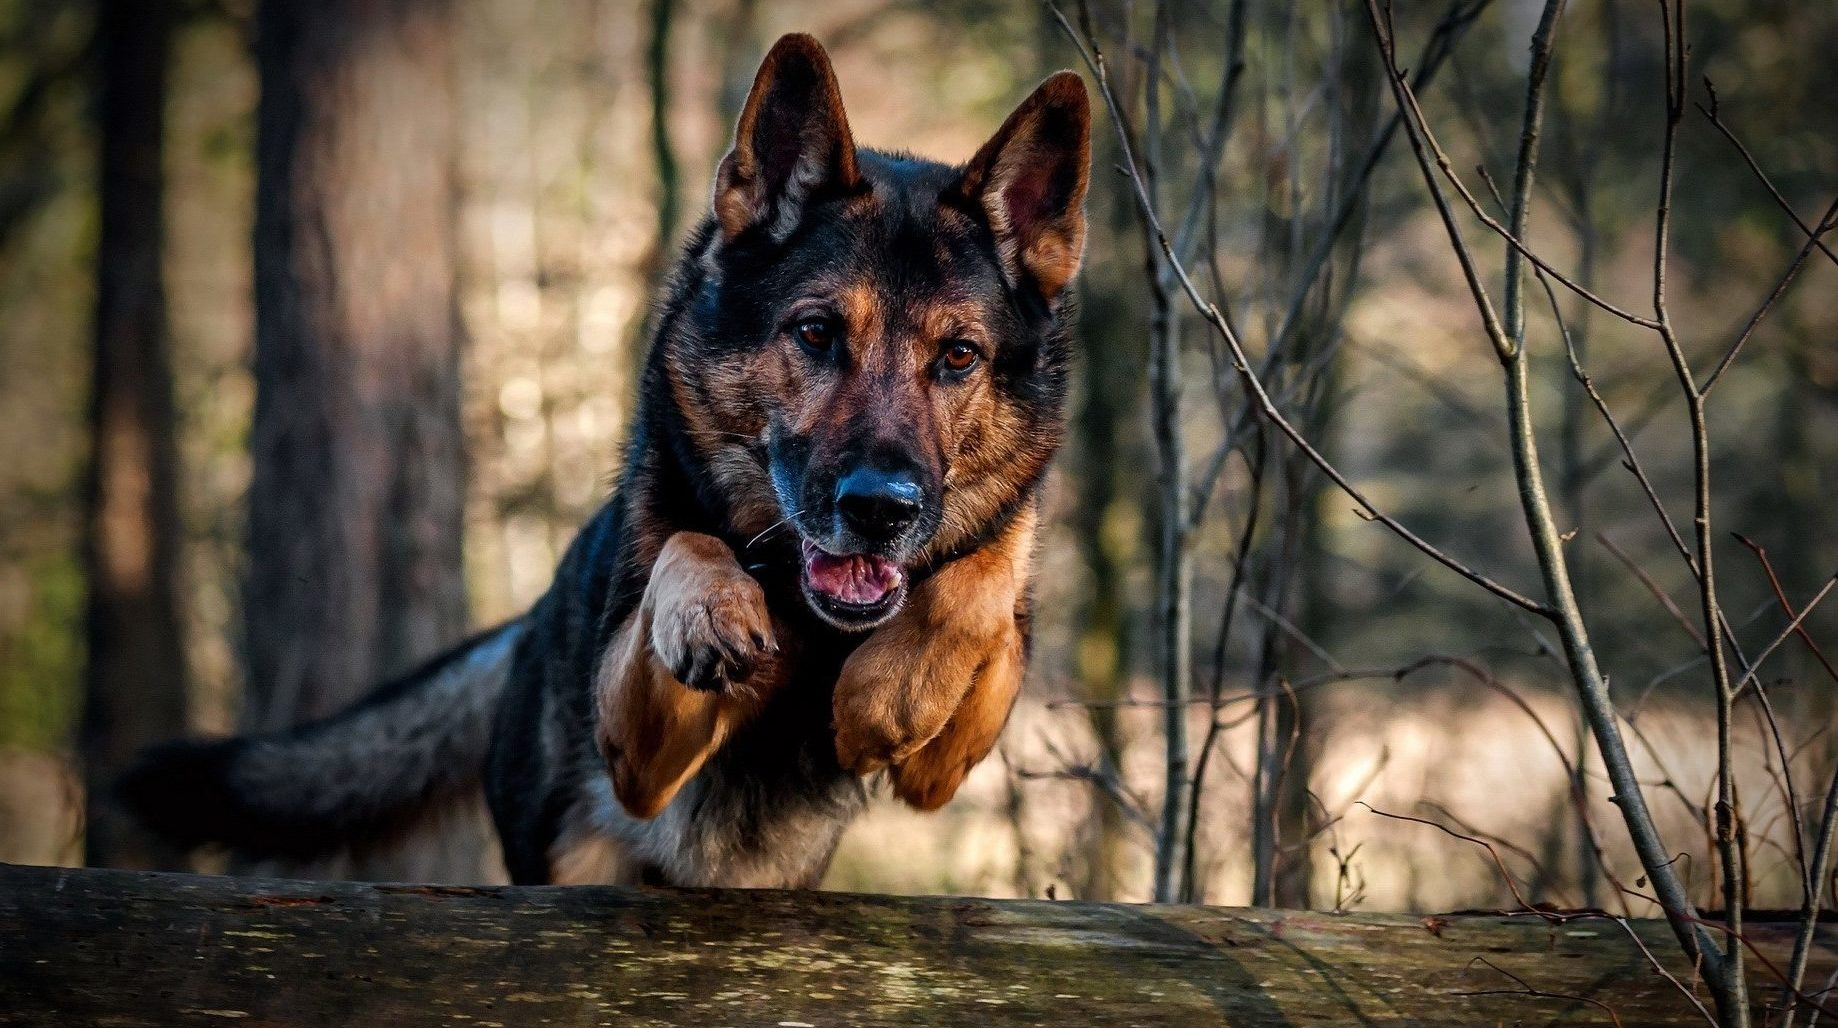 Military Dogs attacks Jihadists, saves 6 soldiers